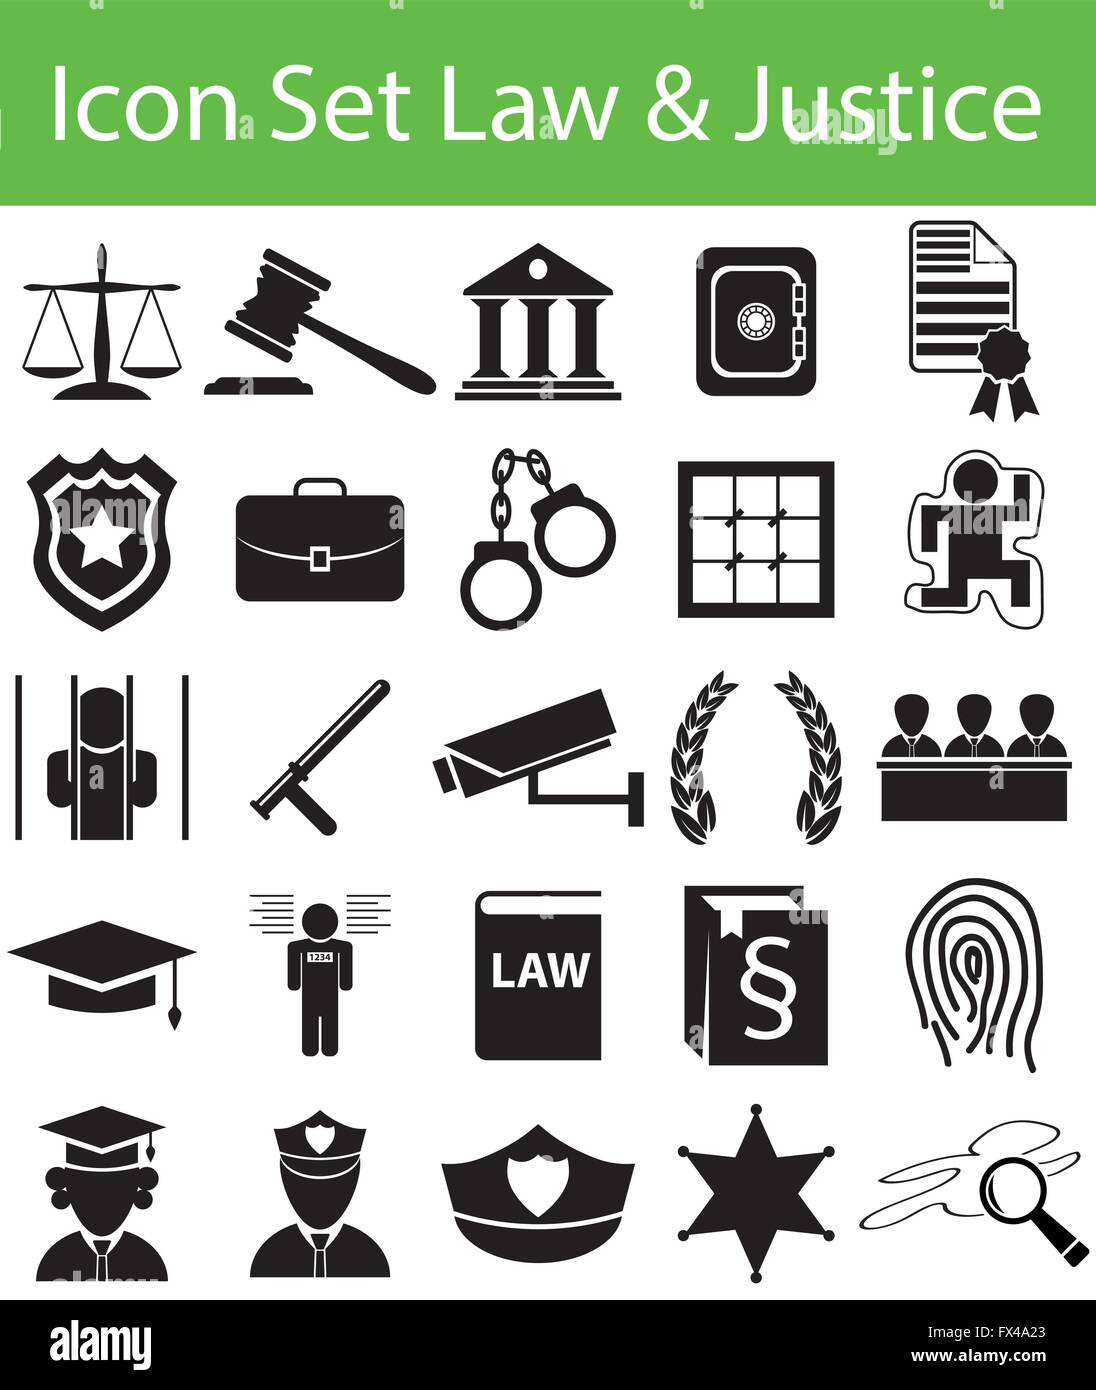 Icon Set Law and Justice with 25 icons for the creative use in graphic design - Stock Image